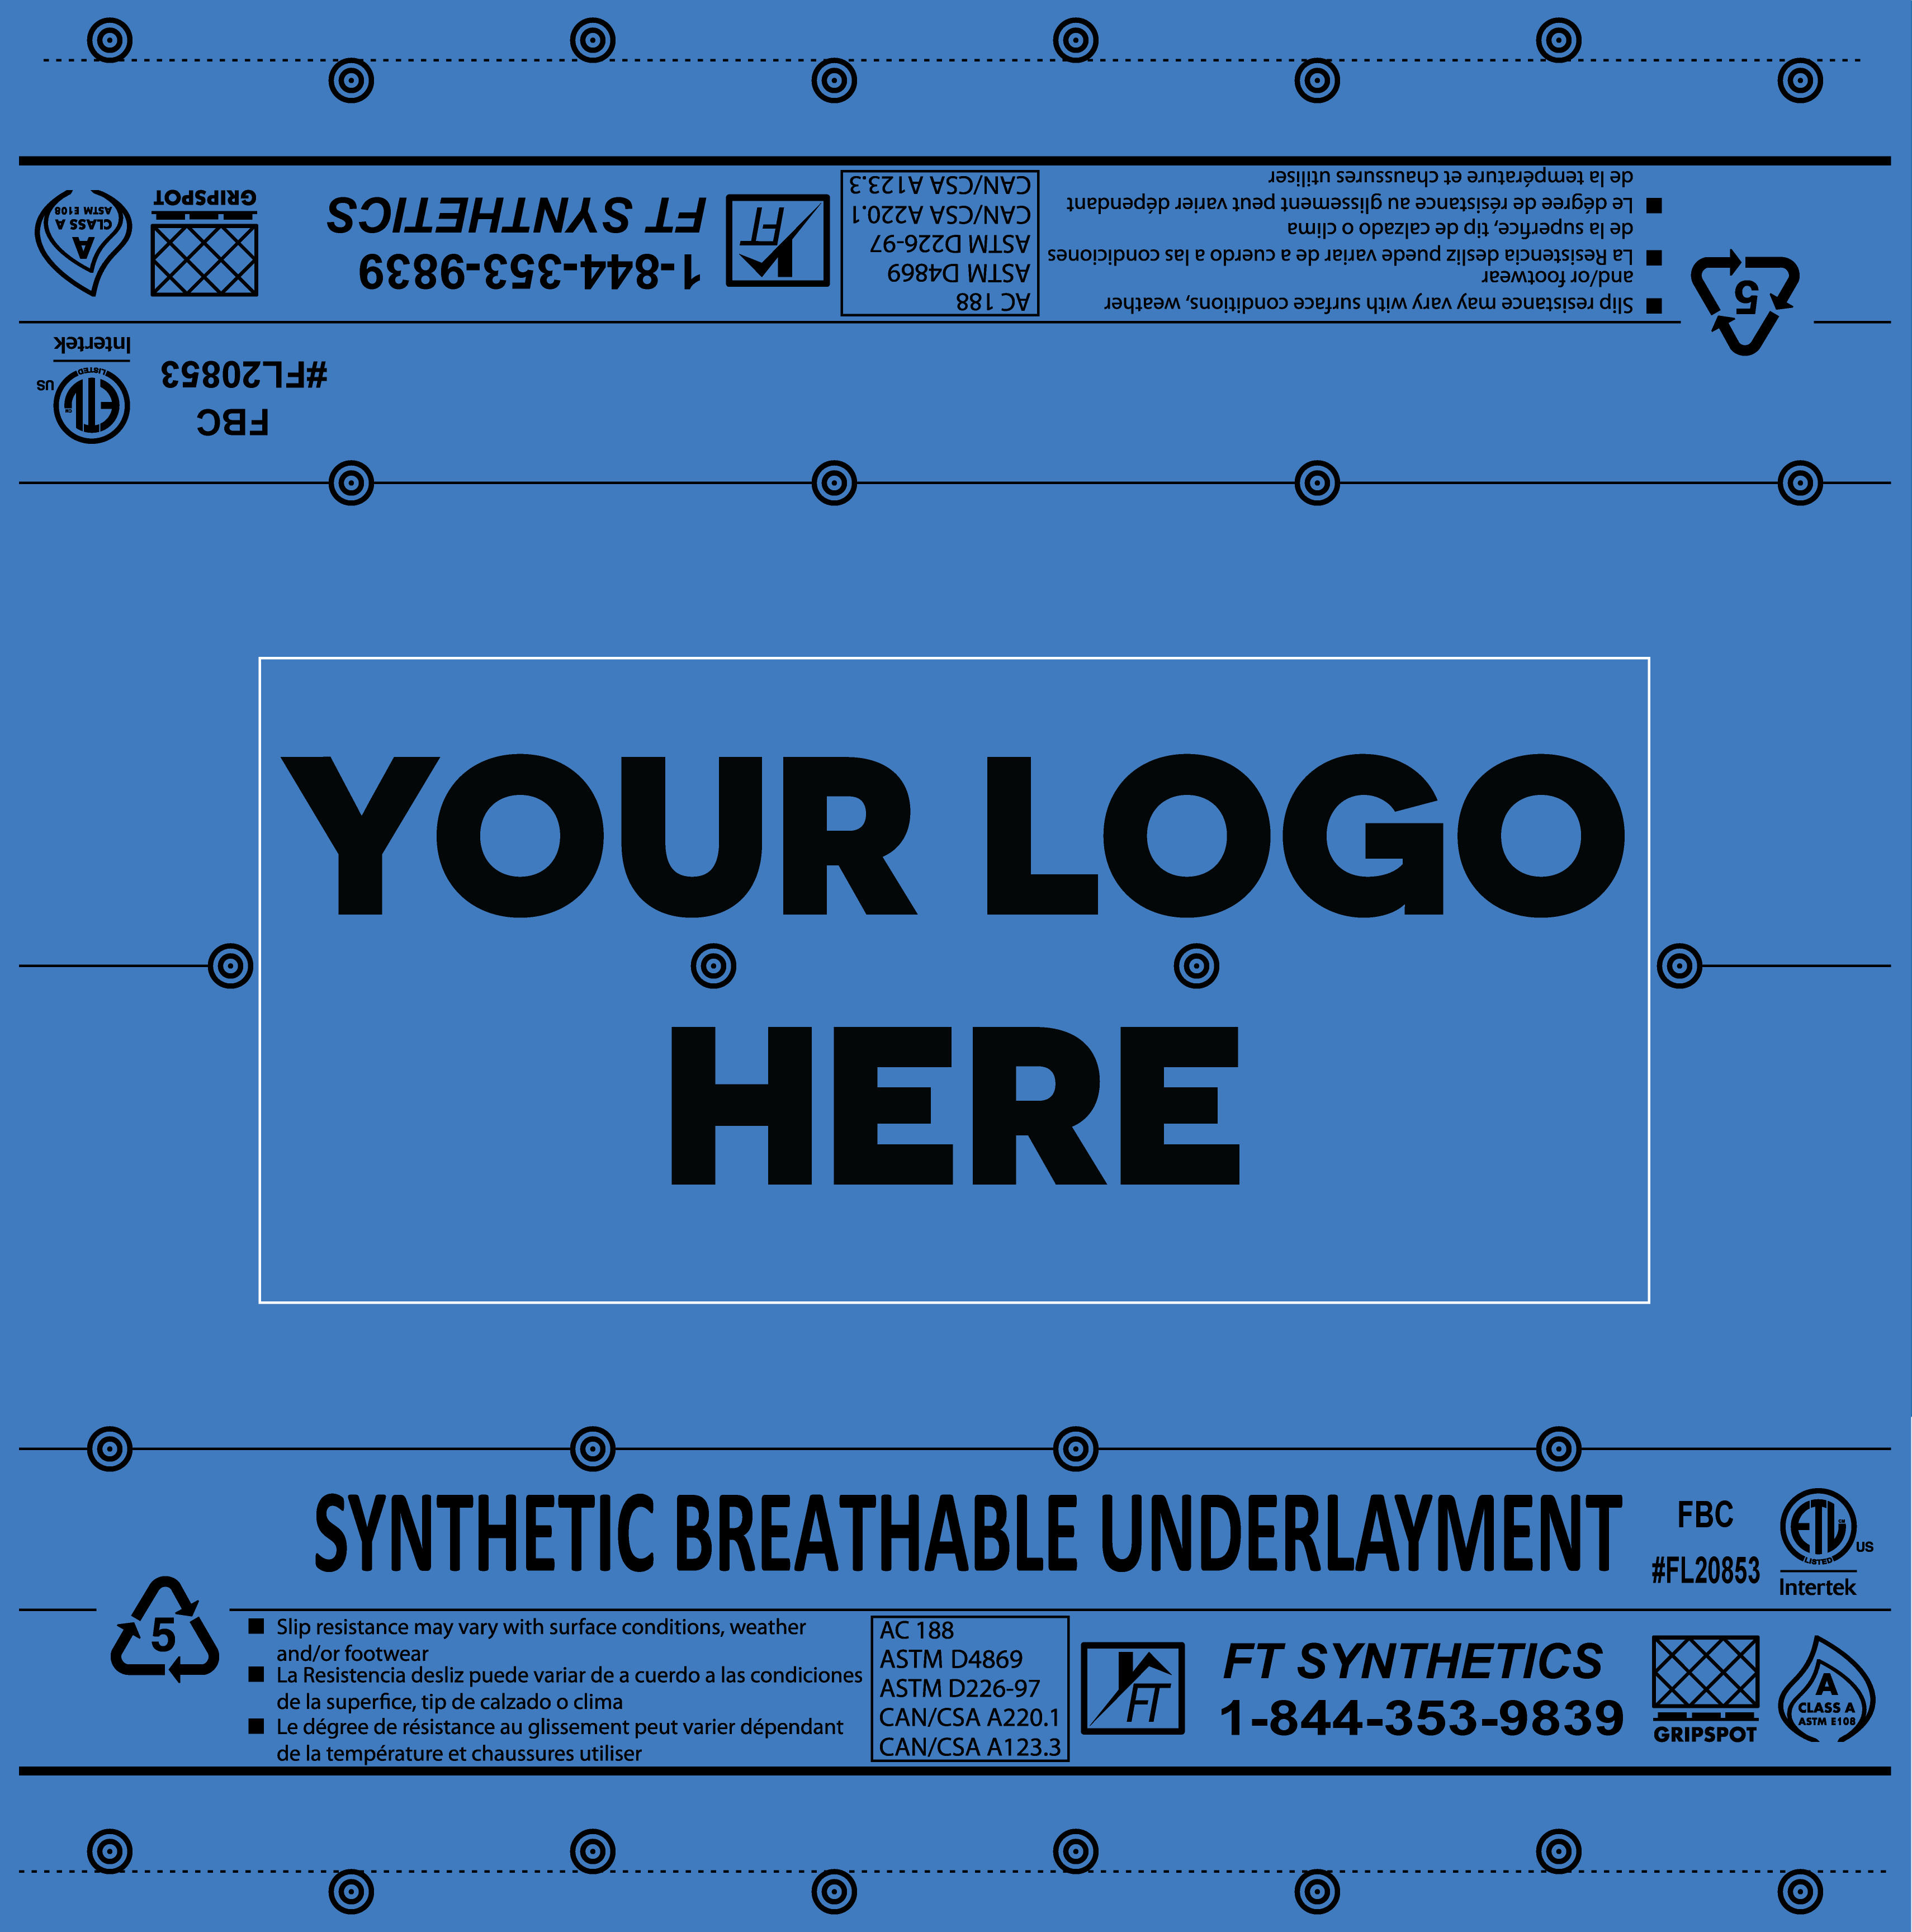 FT-hydra-your_logo_here